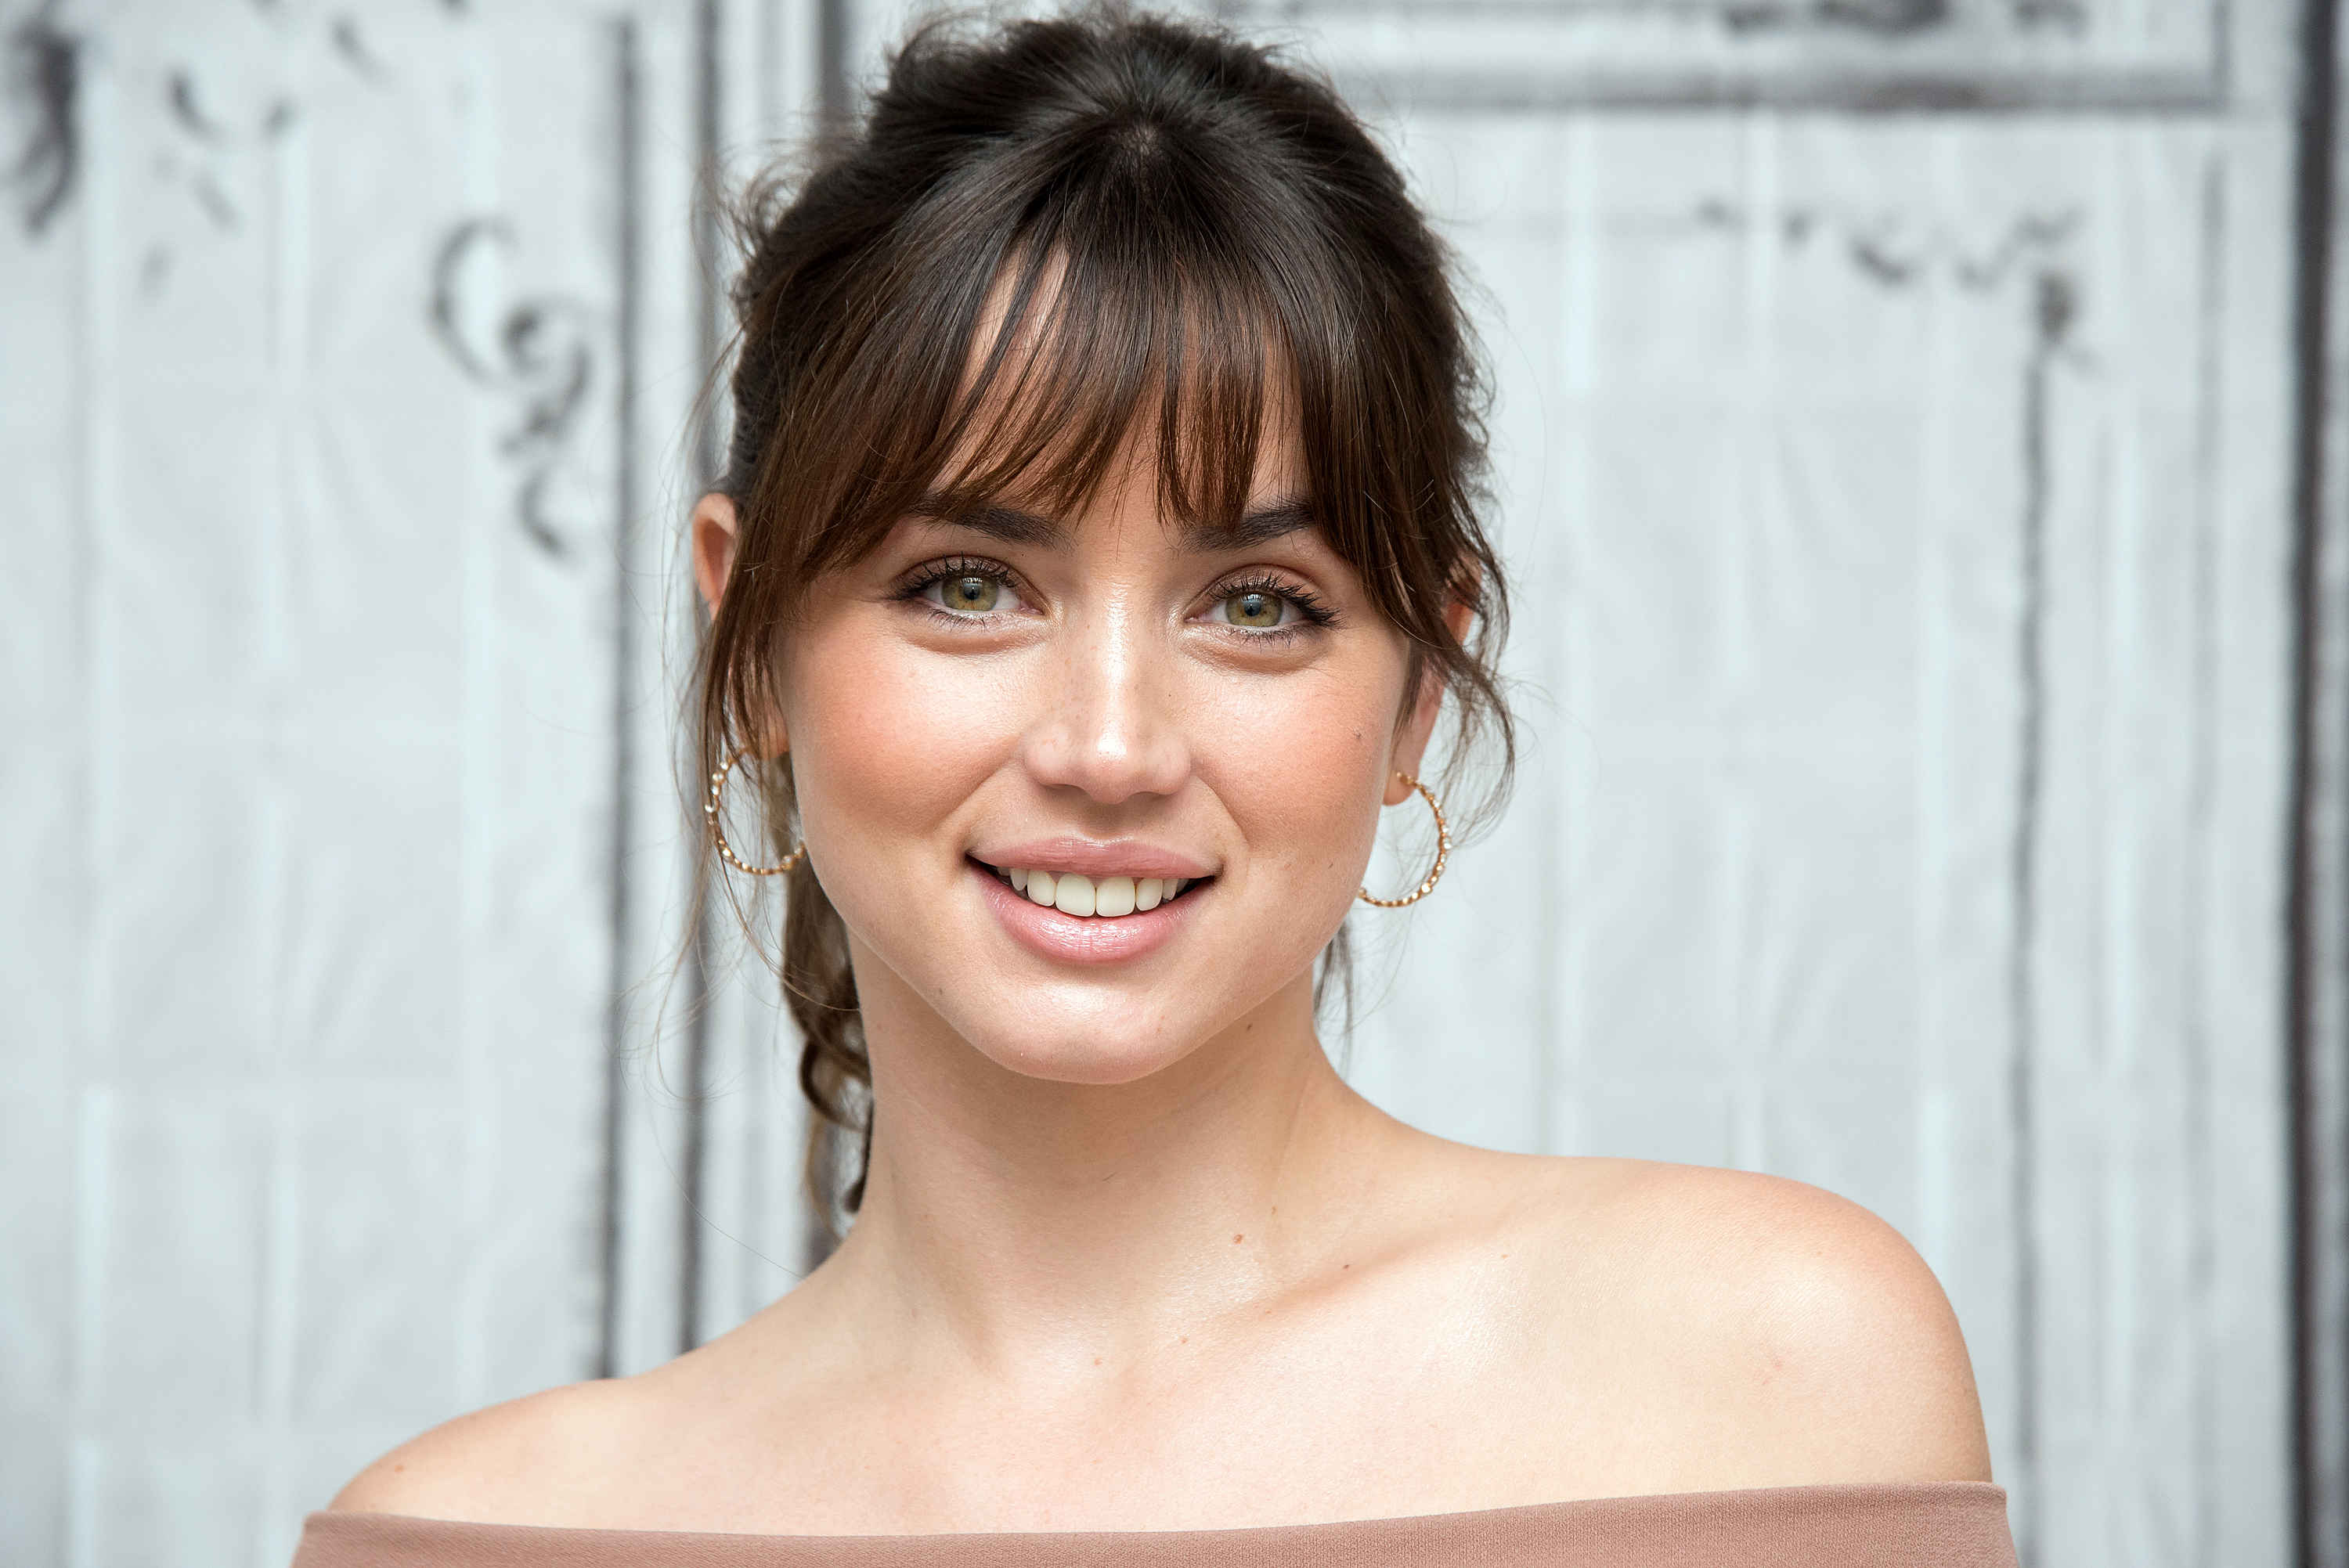 Top 5 Facts About Ana de Armas You Should Be Aware Of